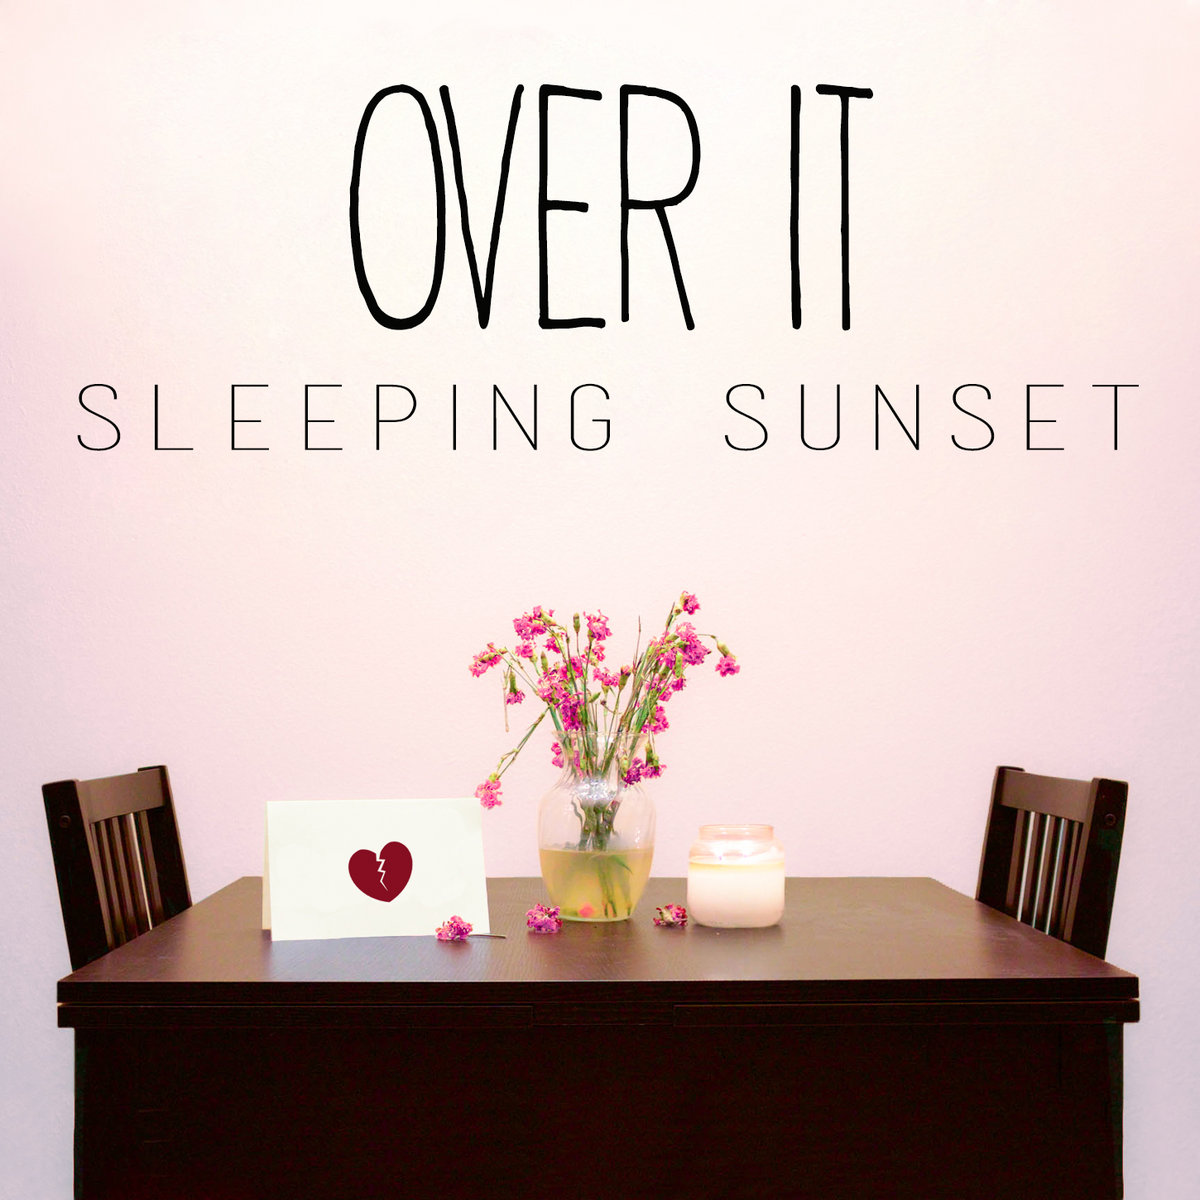 Over It (Single) by Sleeping Sunset